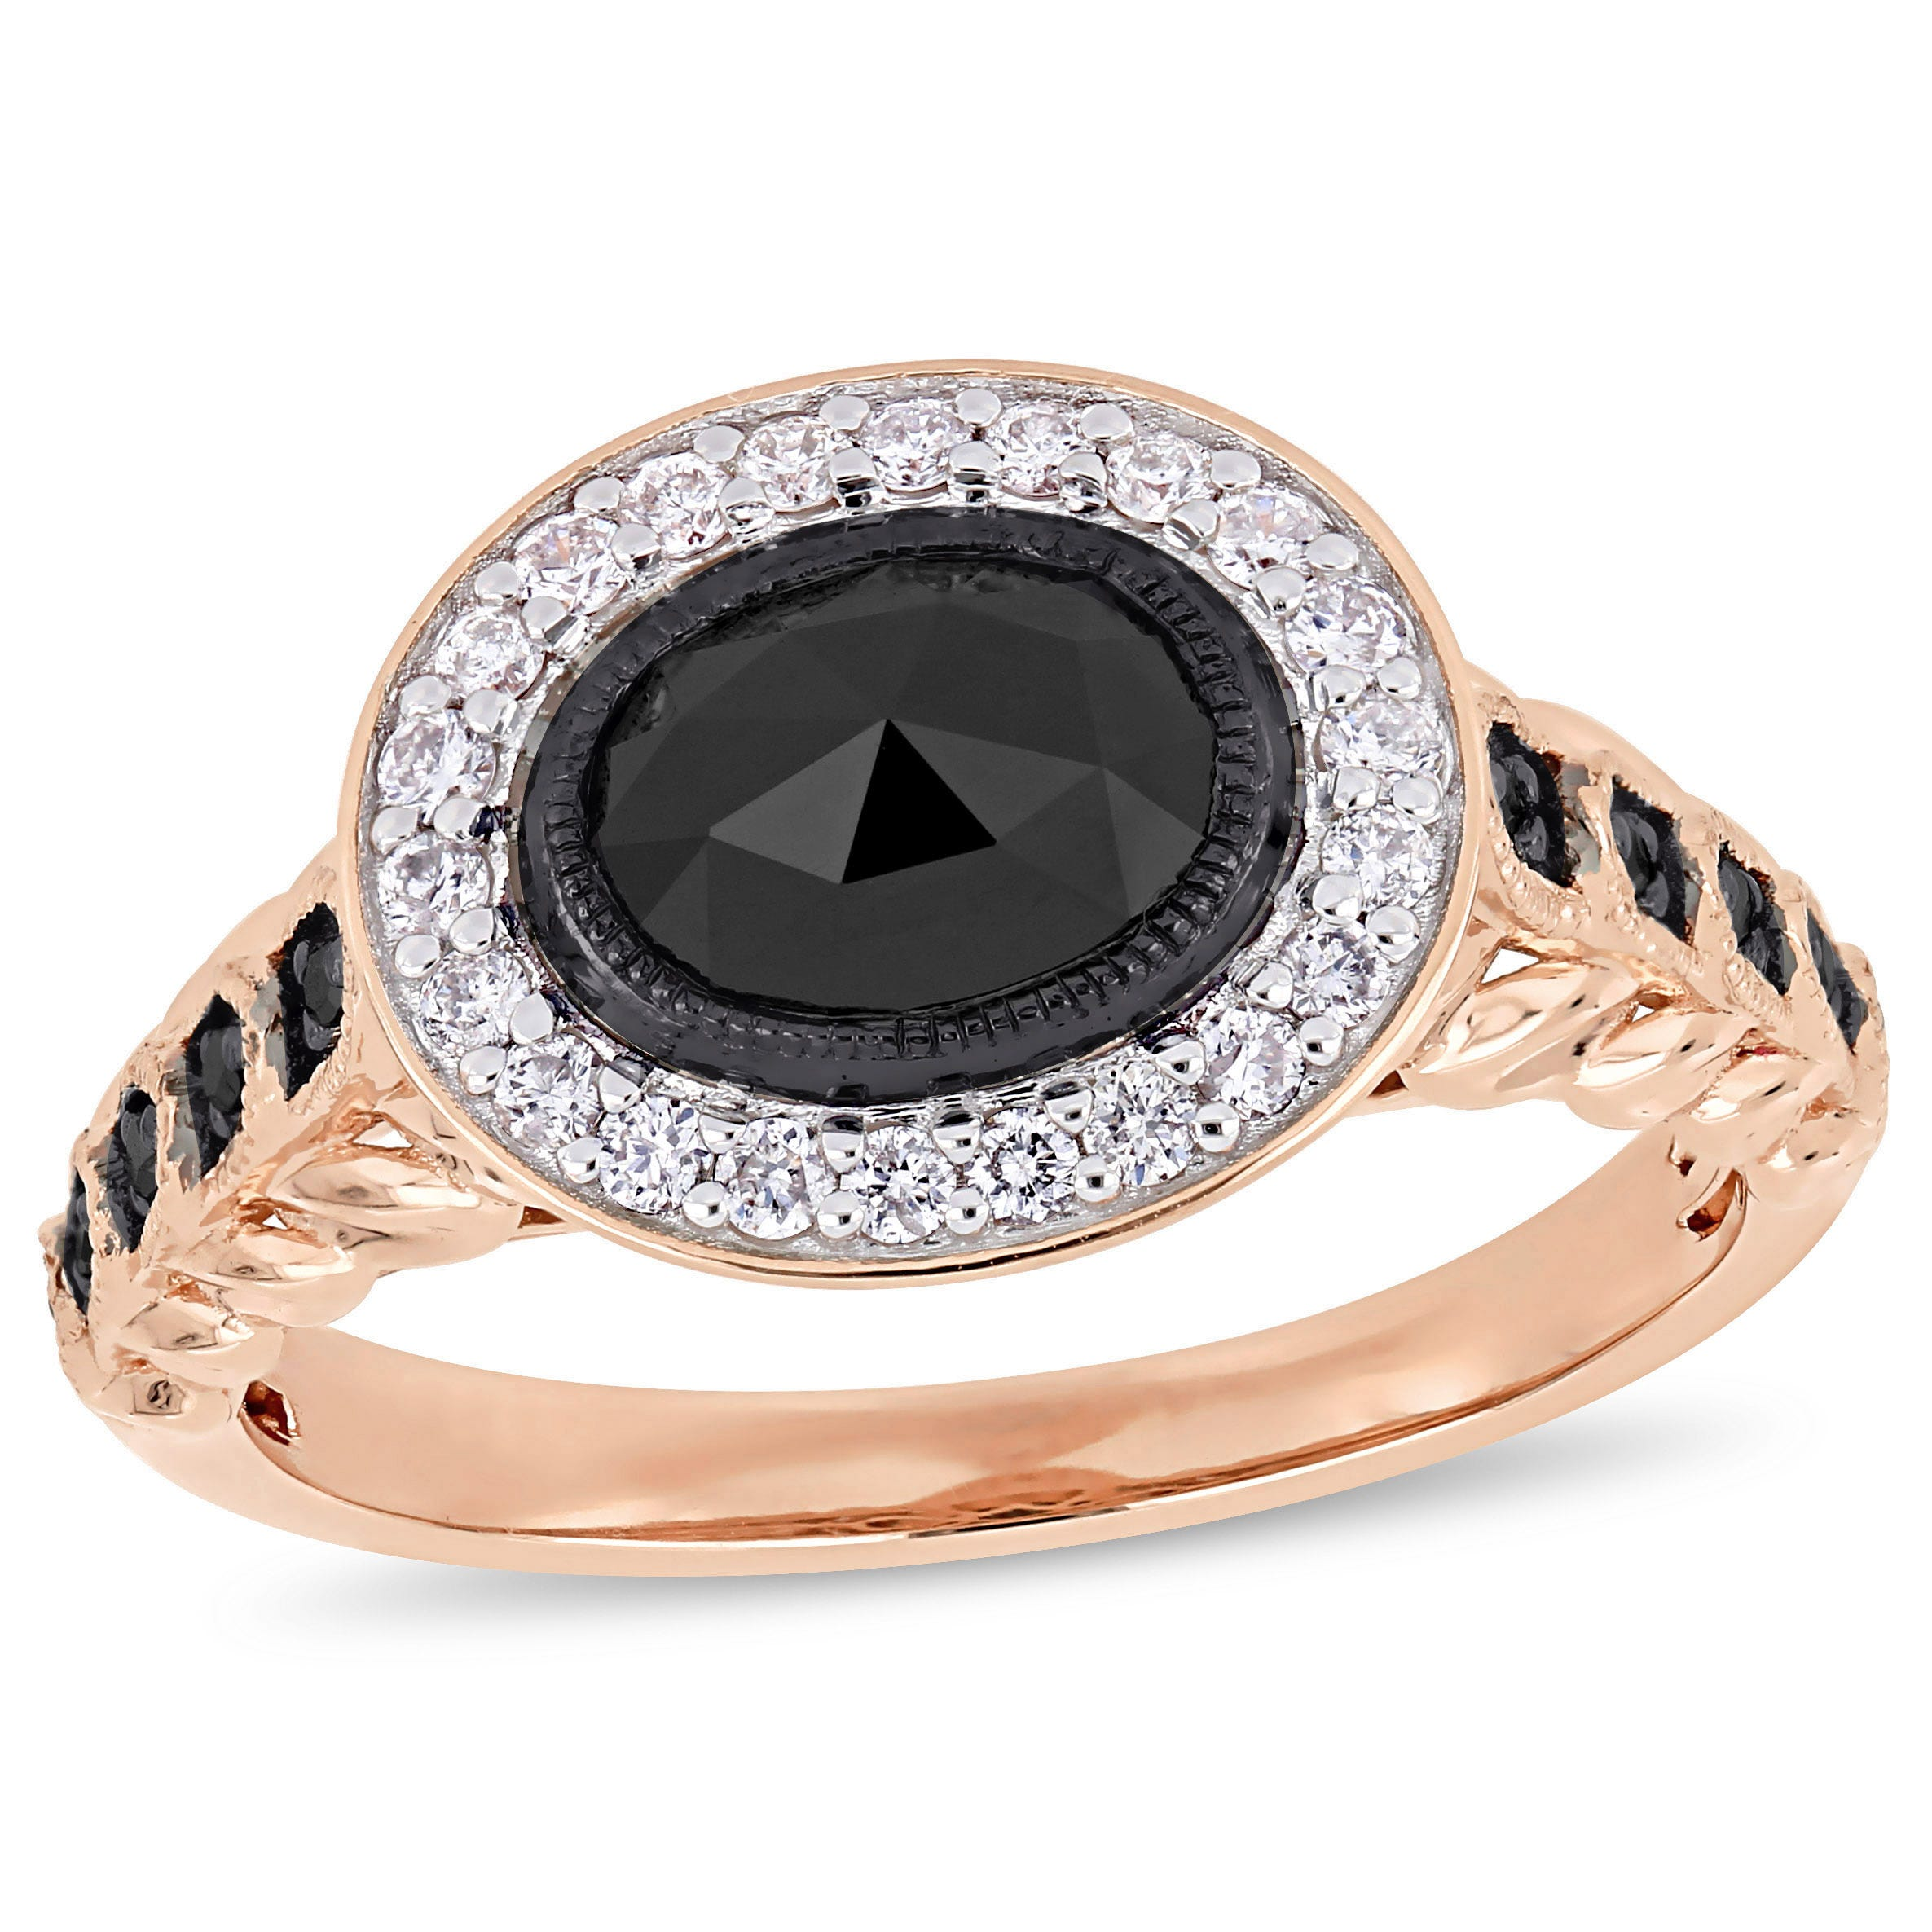 Black Oval Horizontal & Diamond Halo 1.25ctw. Engagement Ring in Rose Gold